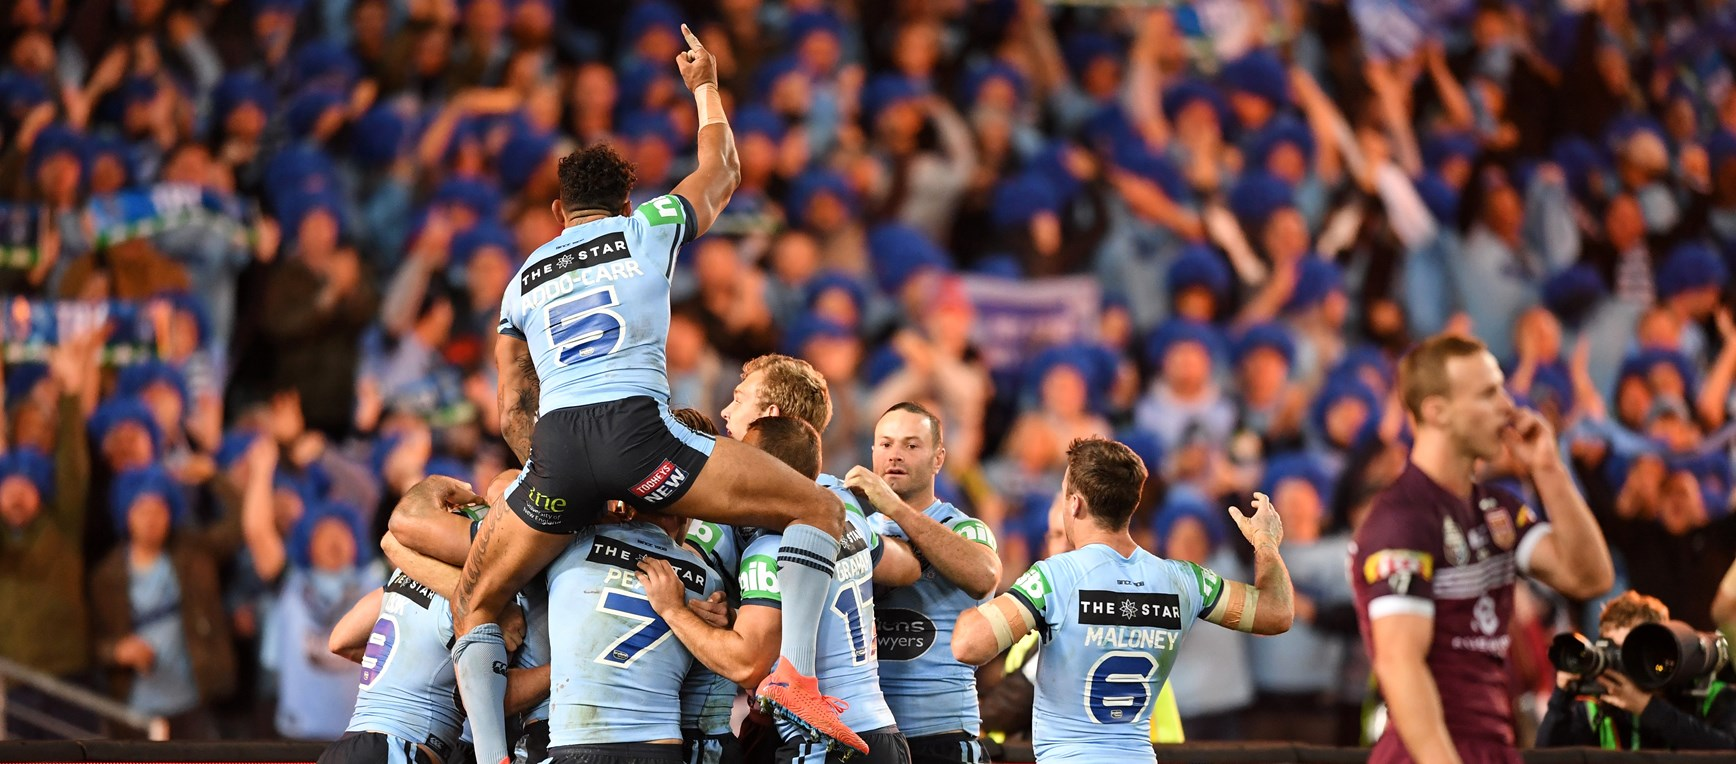 Best photos from State of Origin III